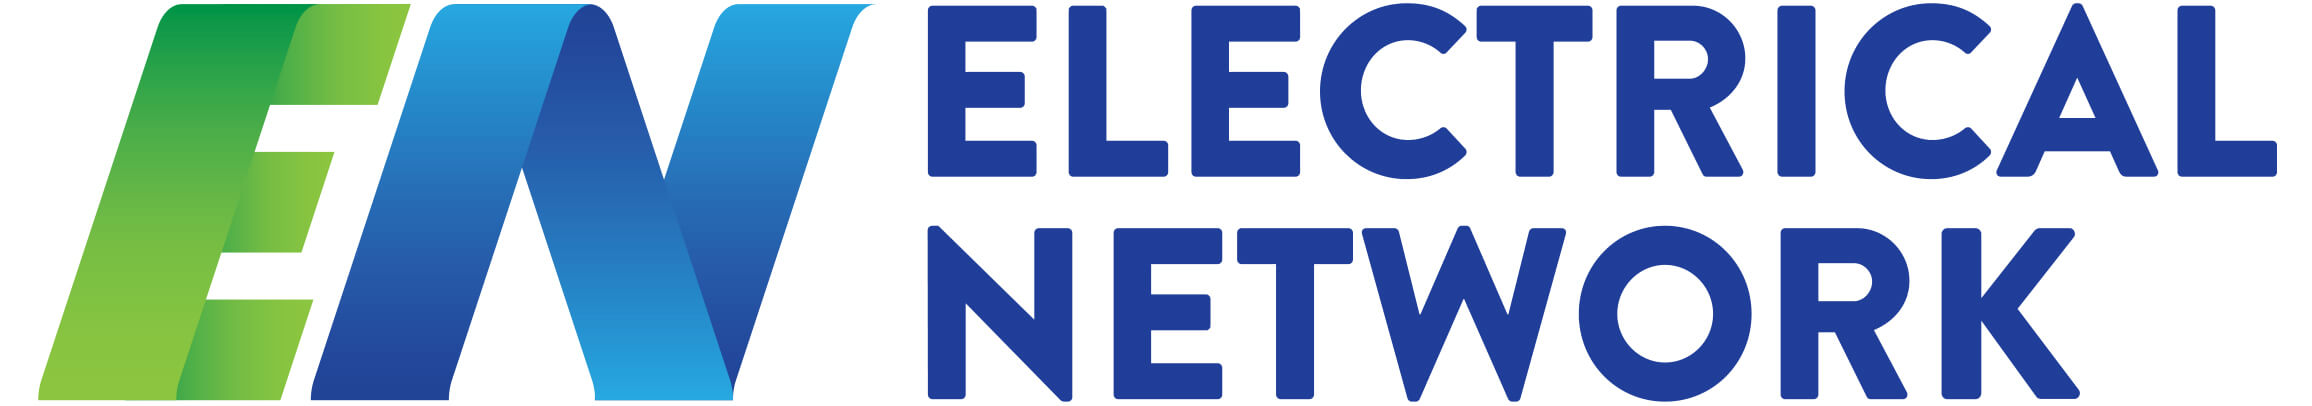 Electrical Network logo